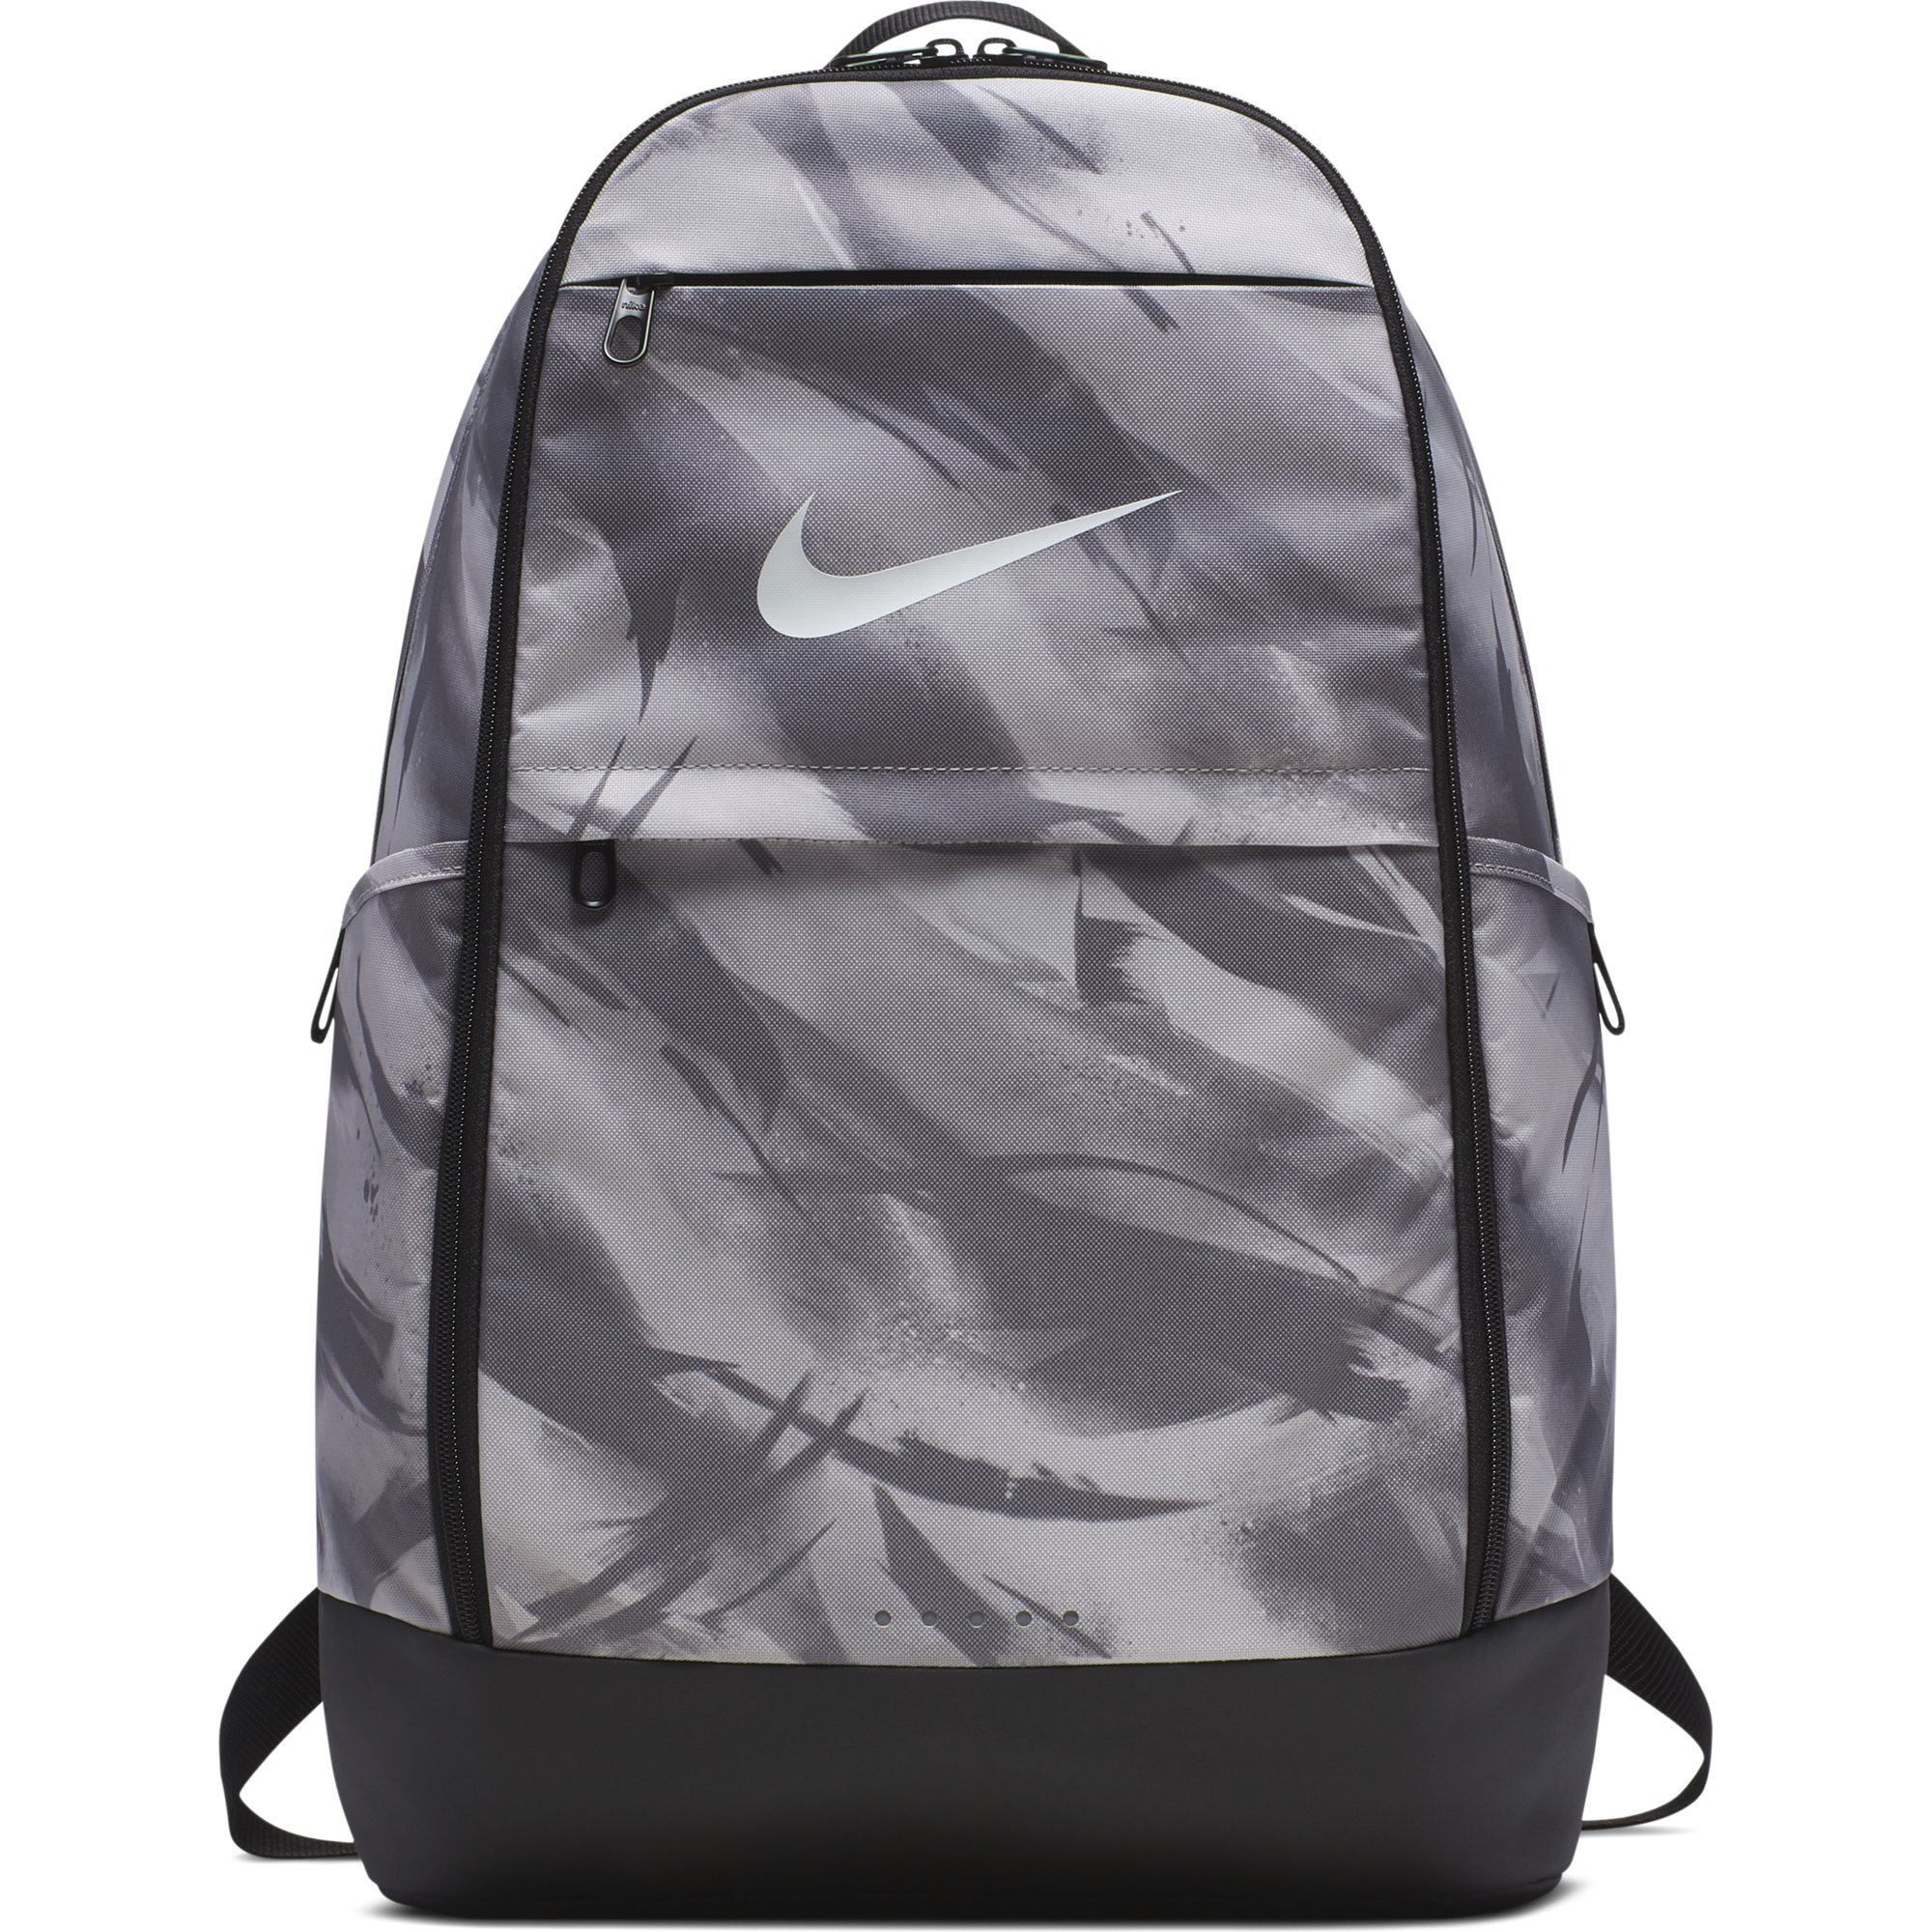 Durable design. Secure storage. The NIKE Brasilia All Over Print Backpack  ... 0331f8459d9c7